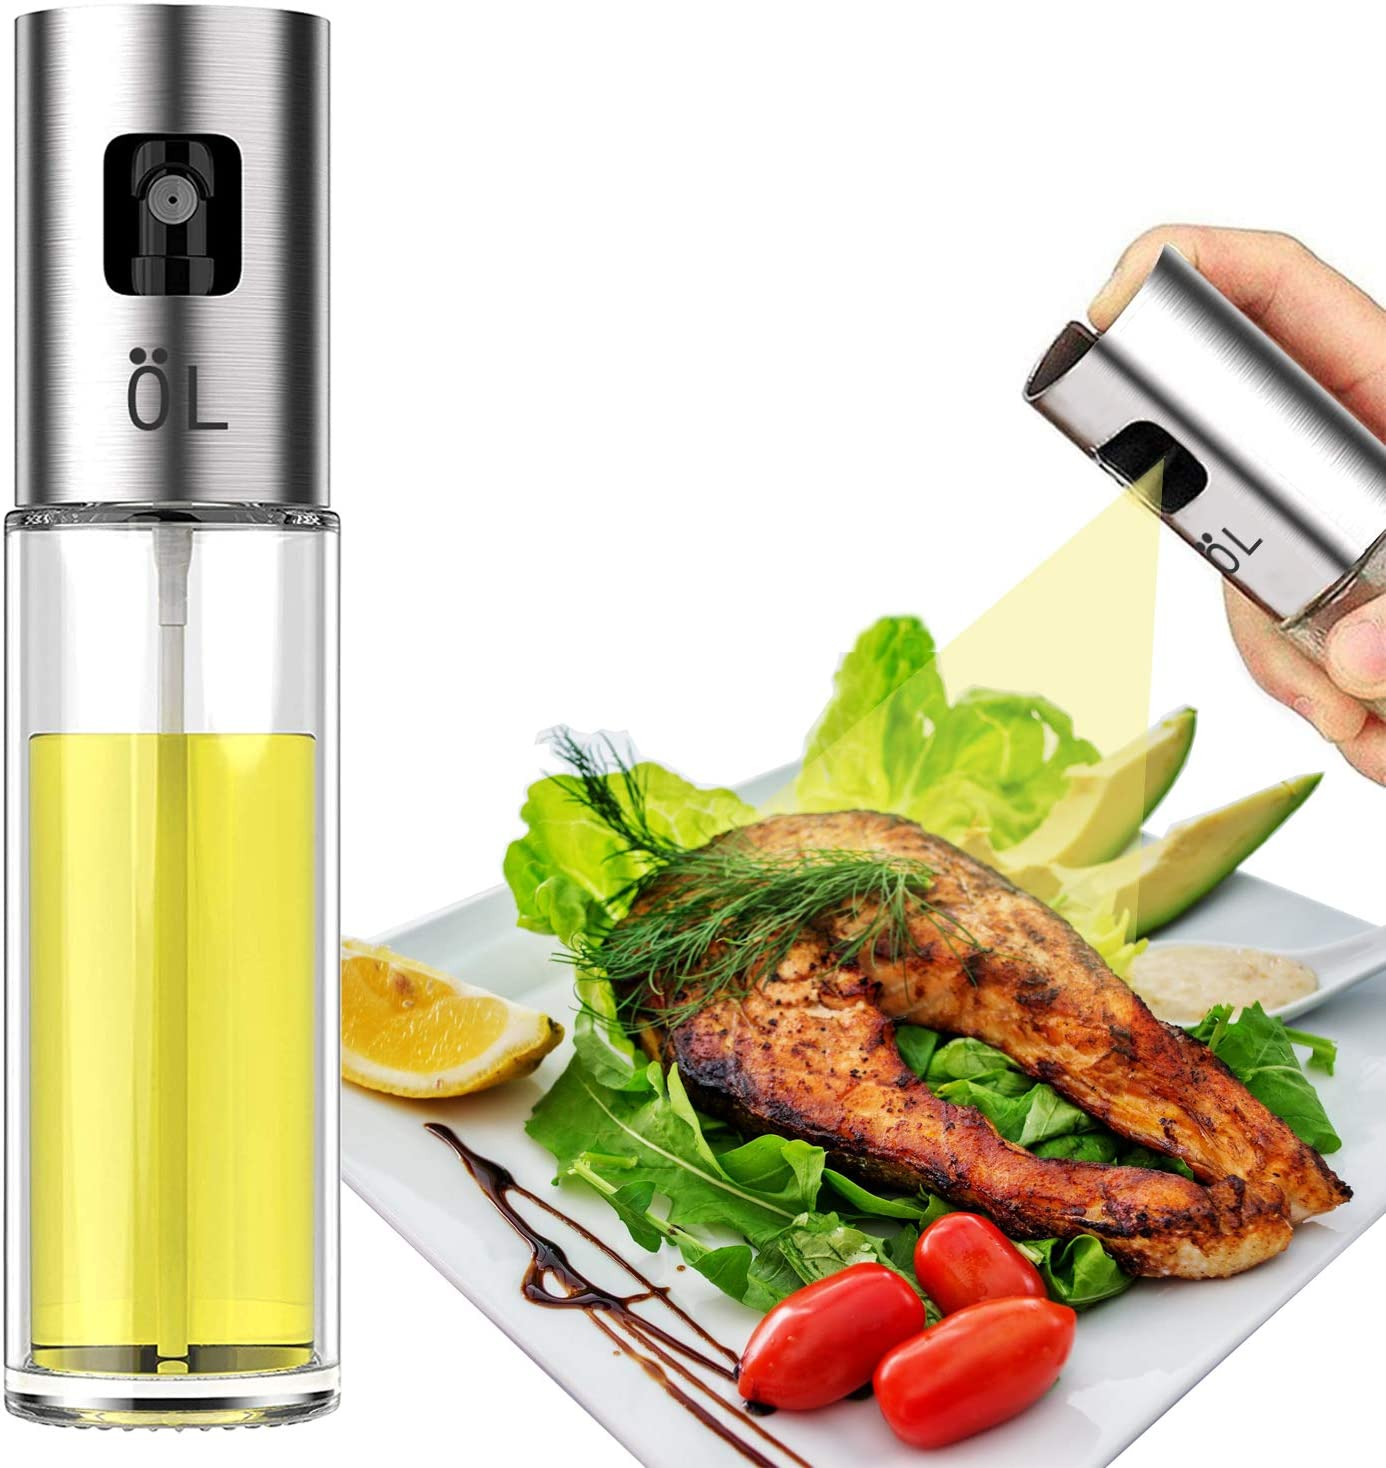 LAO XUE Olive Oil Sprayer Food-Grade Glass Bottle Gispenser For Cooking, BBQ, Salad, Kitchen Baking, Roasting, Frying